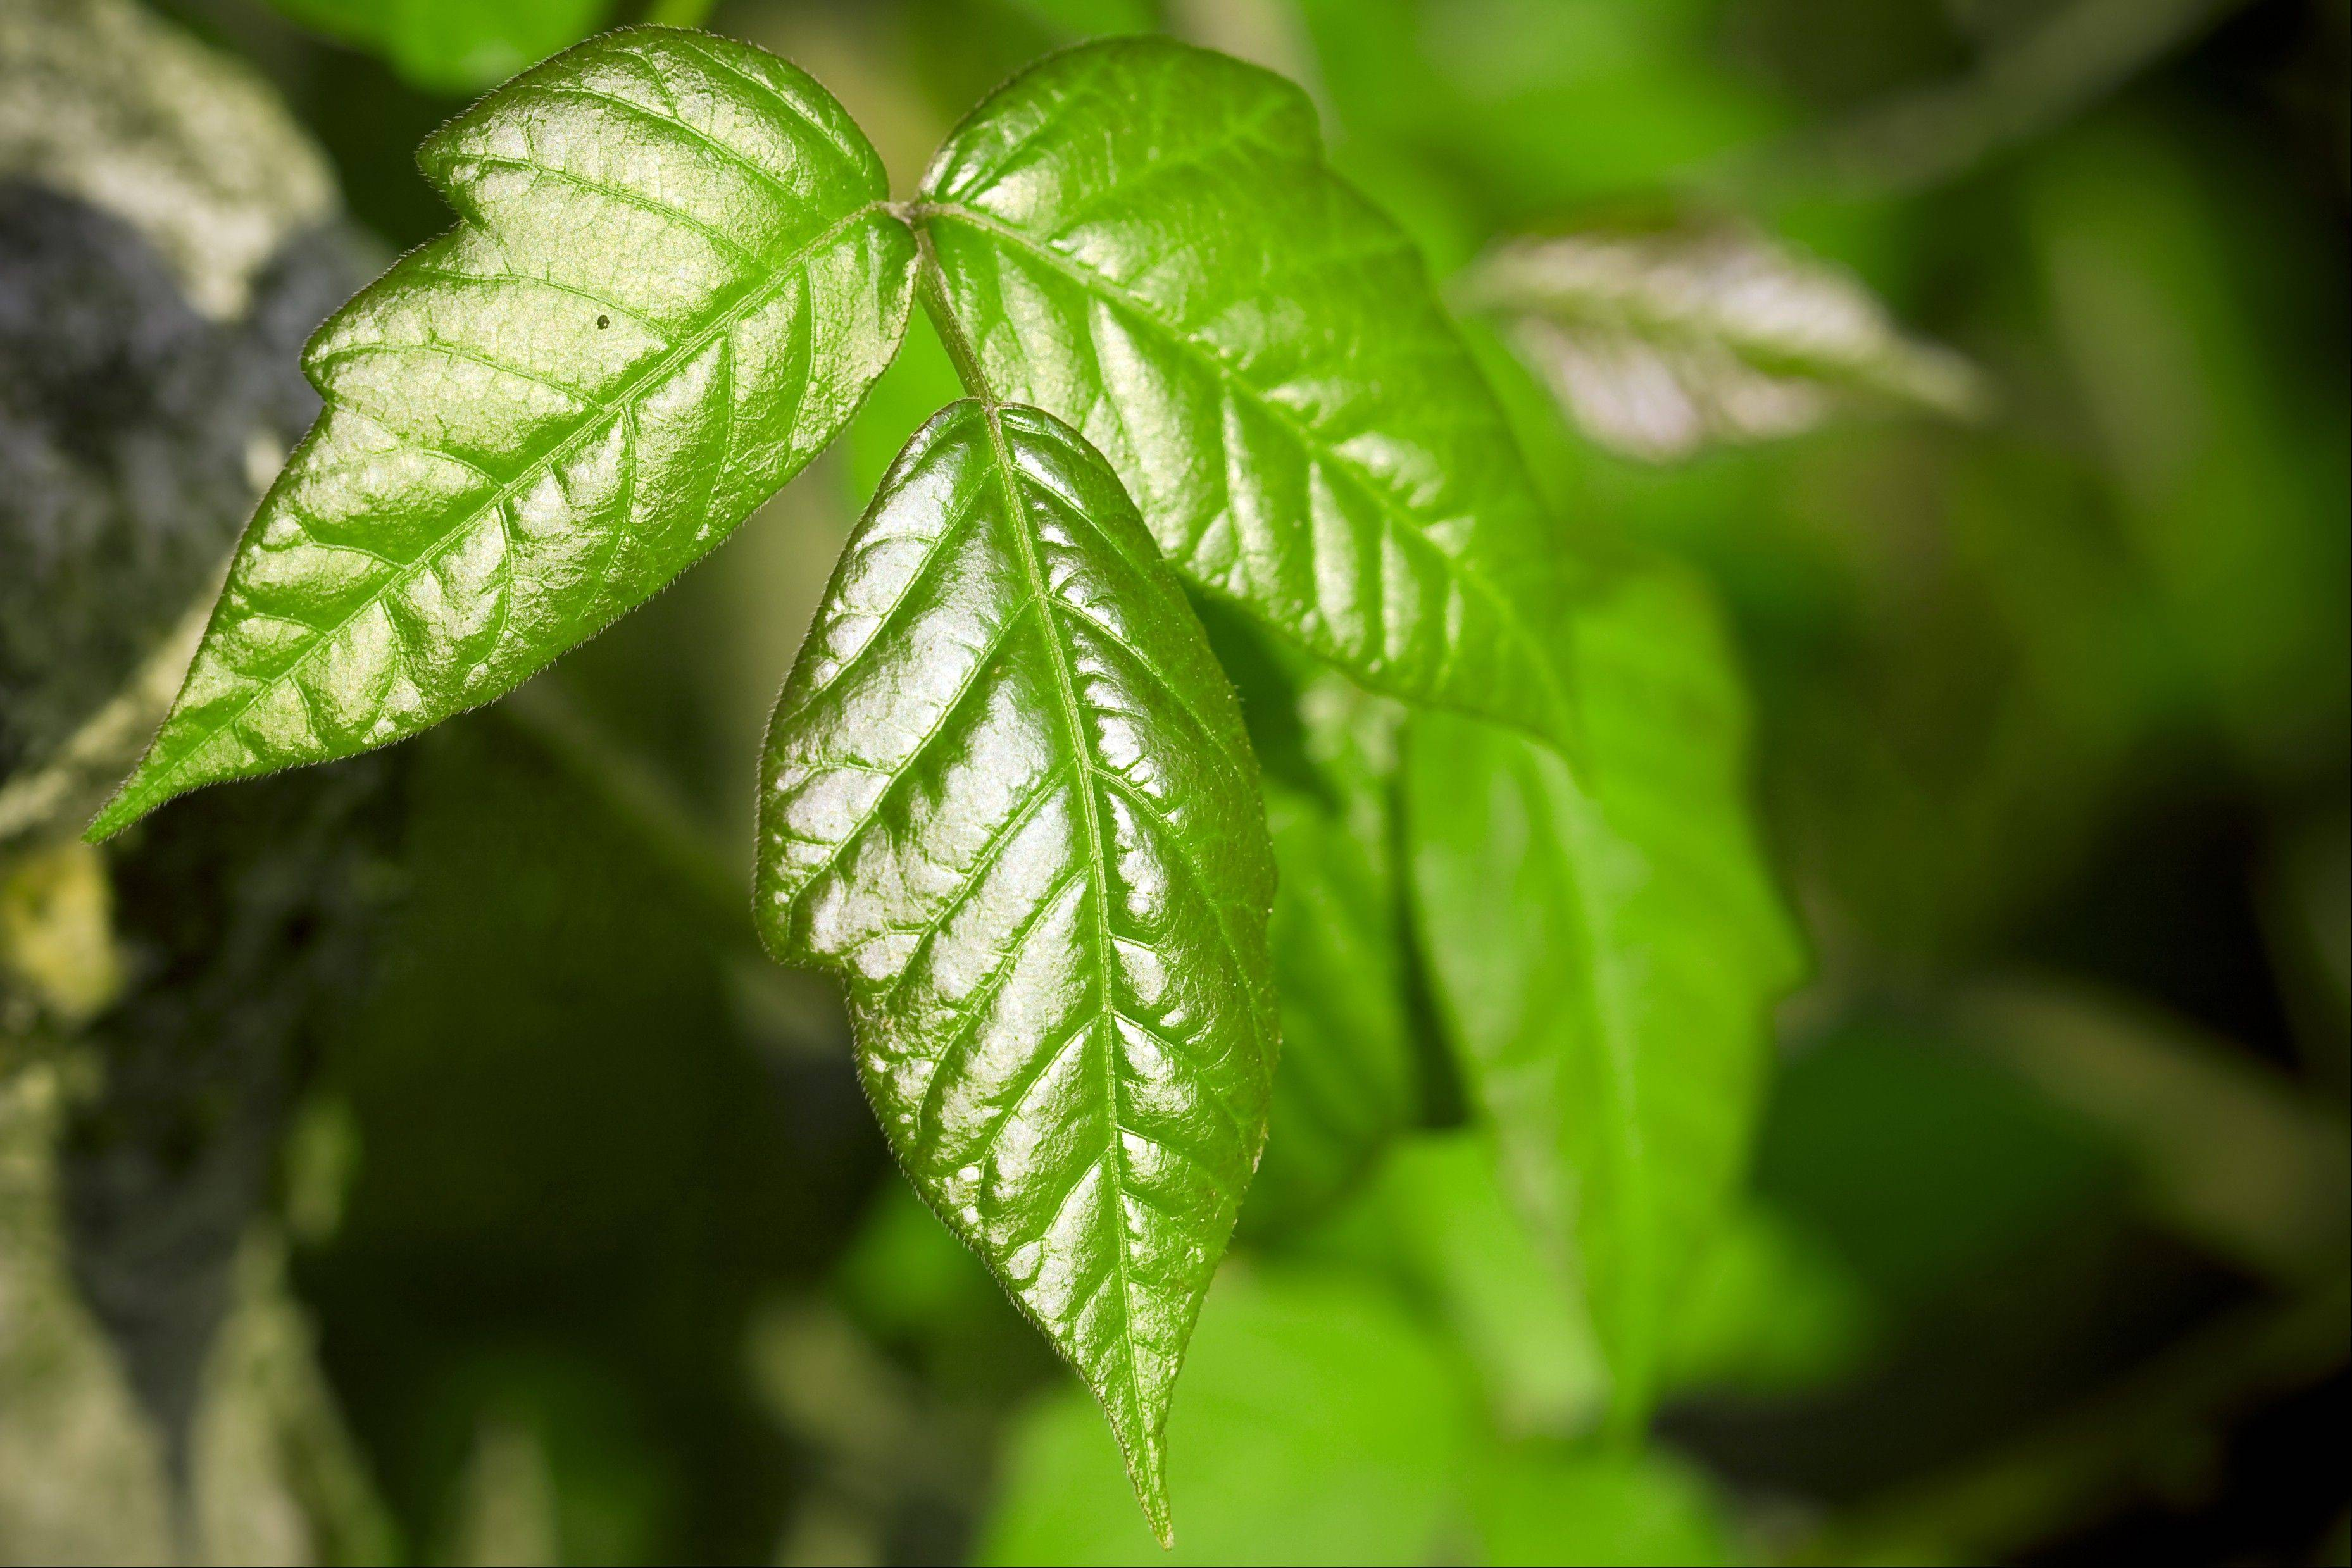 Learn to recognize pesky plants like poison ivy, pictured here, to avoid itchy and burning skin.